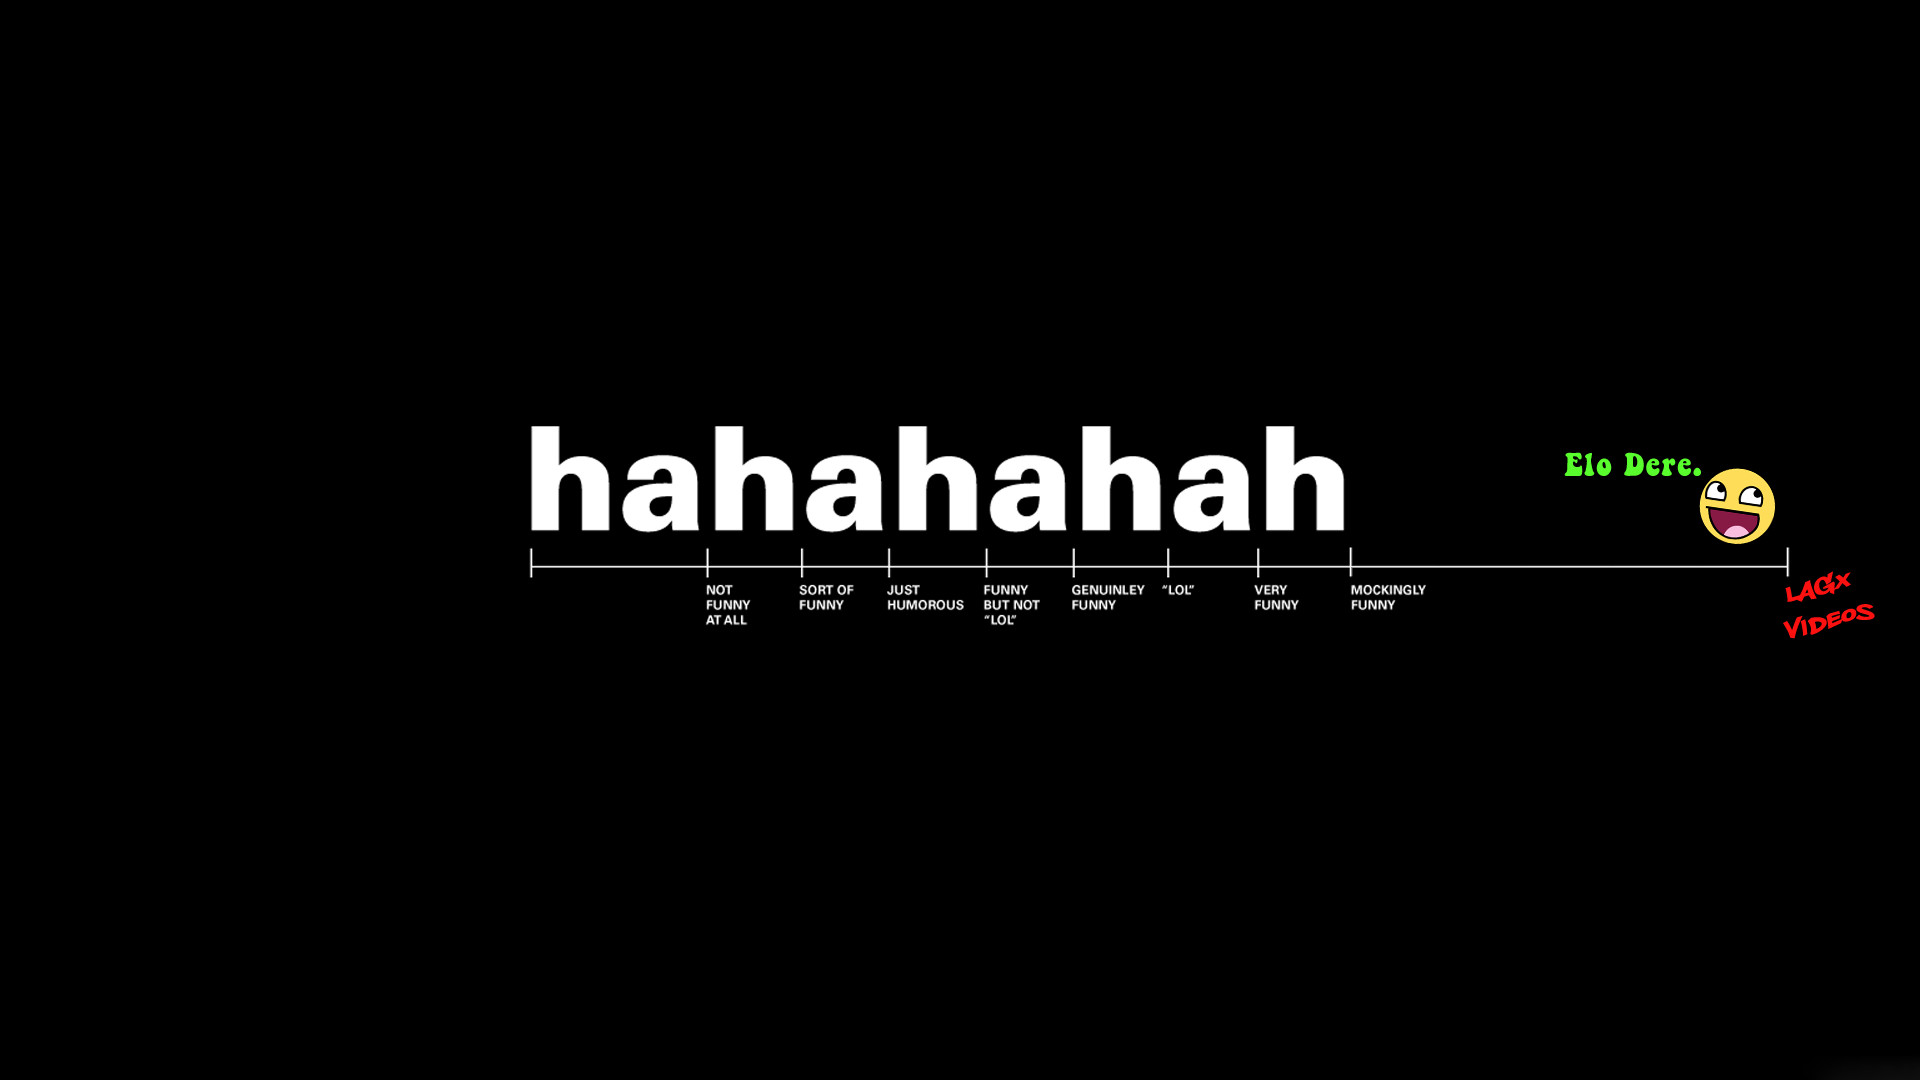 Very Funny Wallpapers For Desktop Funny Desktop: Funny Wallpapers For Desktop ·① WallpaperTag